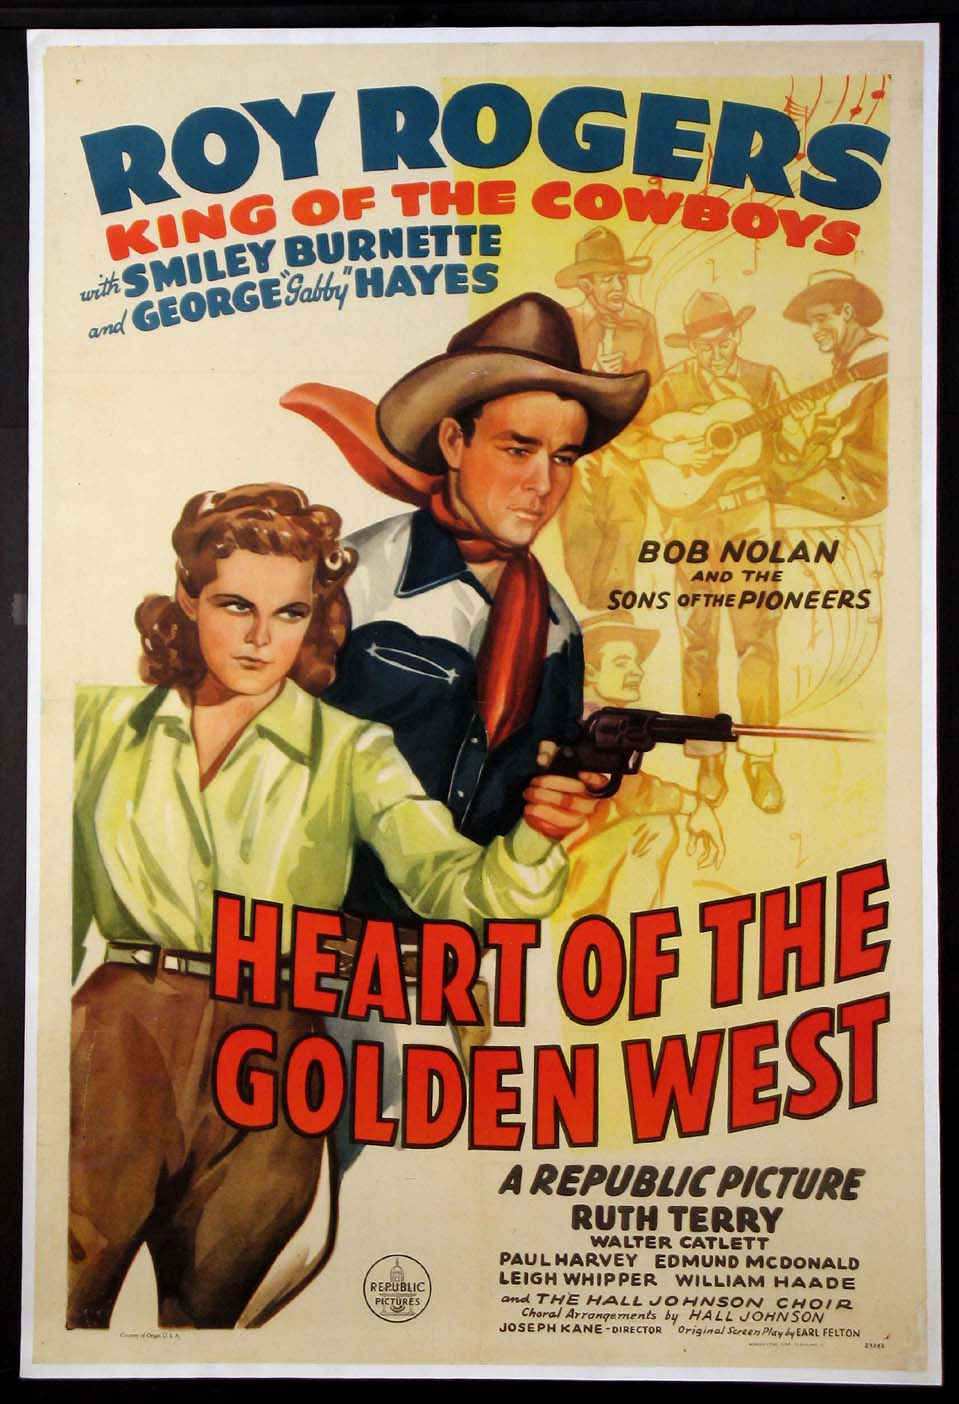 HEART OF THE GOLDEN WEST @ FilmPosters.com